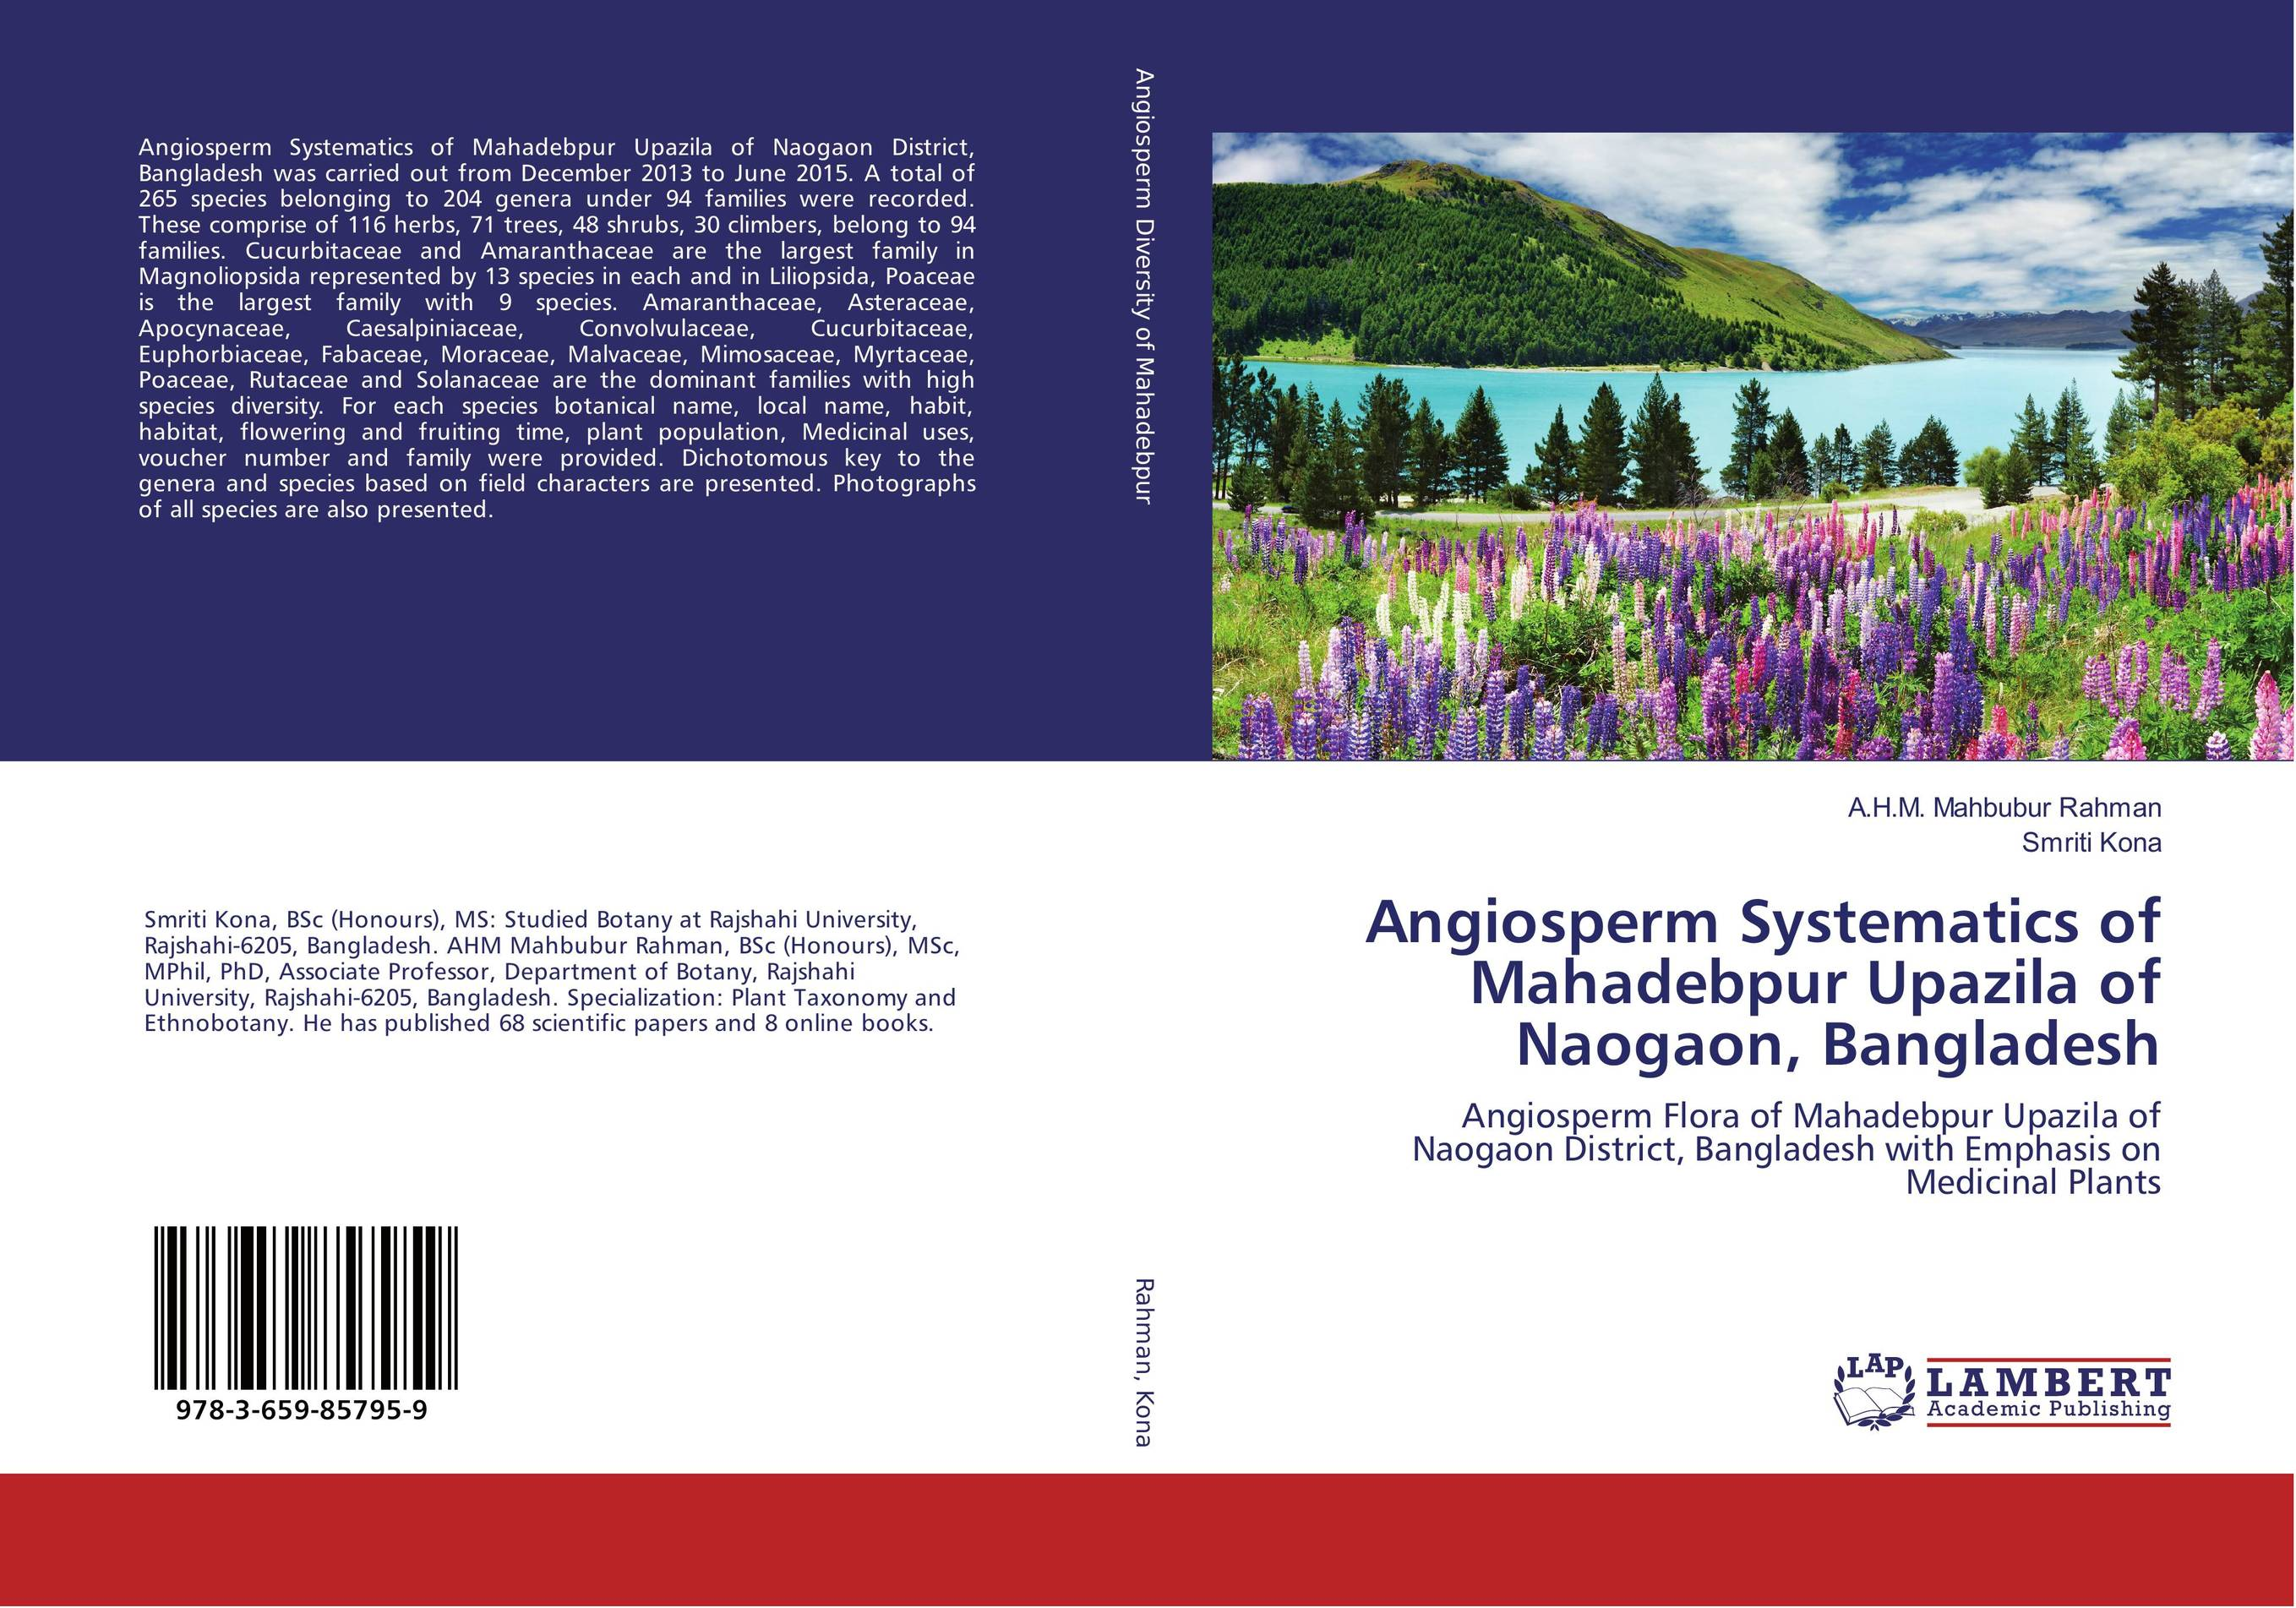 Angiosperm Systematics of Mahadebpur Upazila of Naogaon, Bangladesh systematics on family tabanidae in egypt